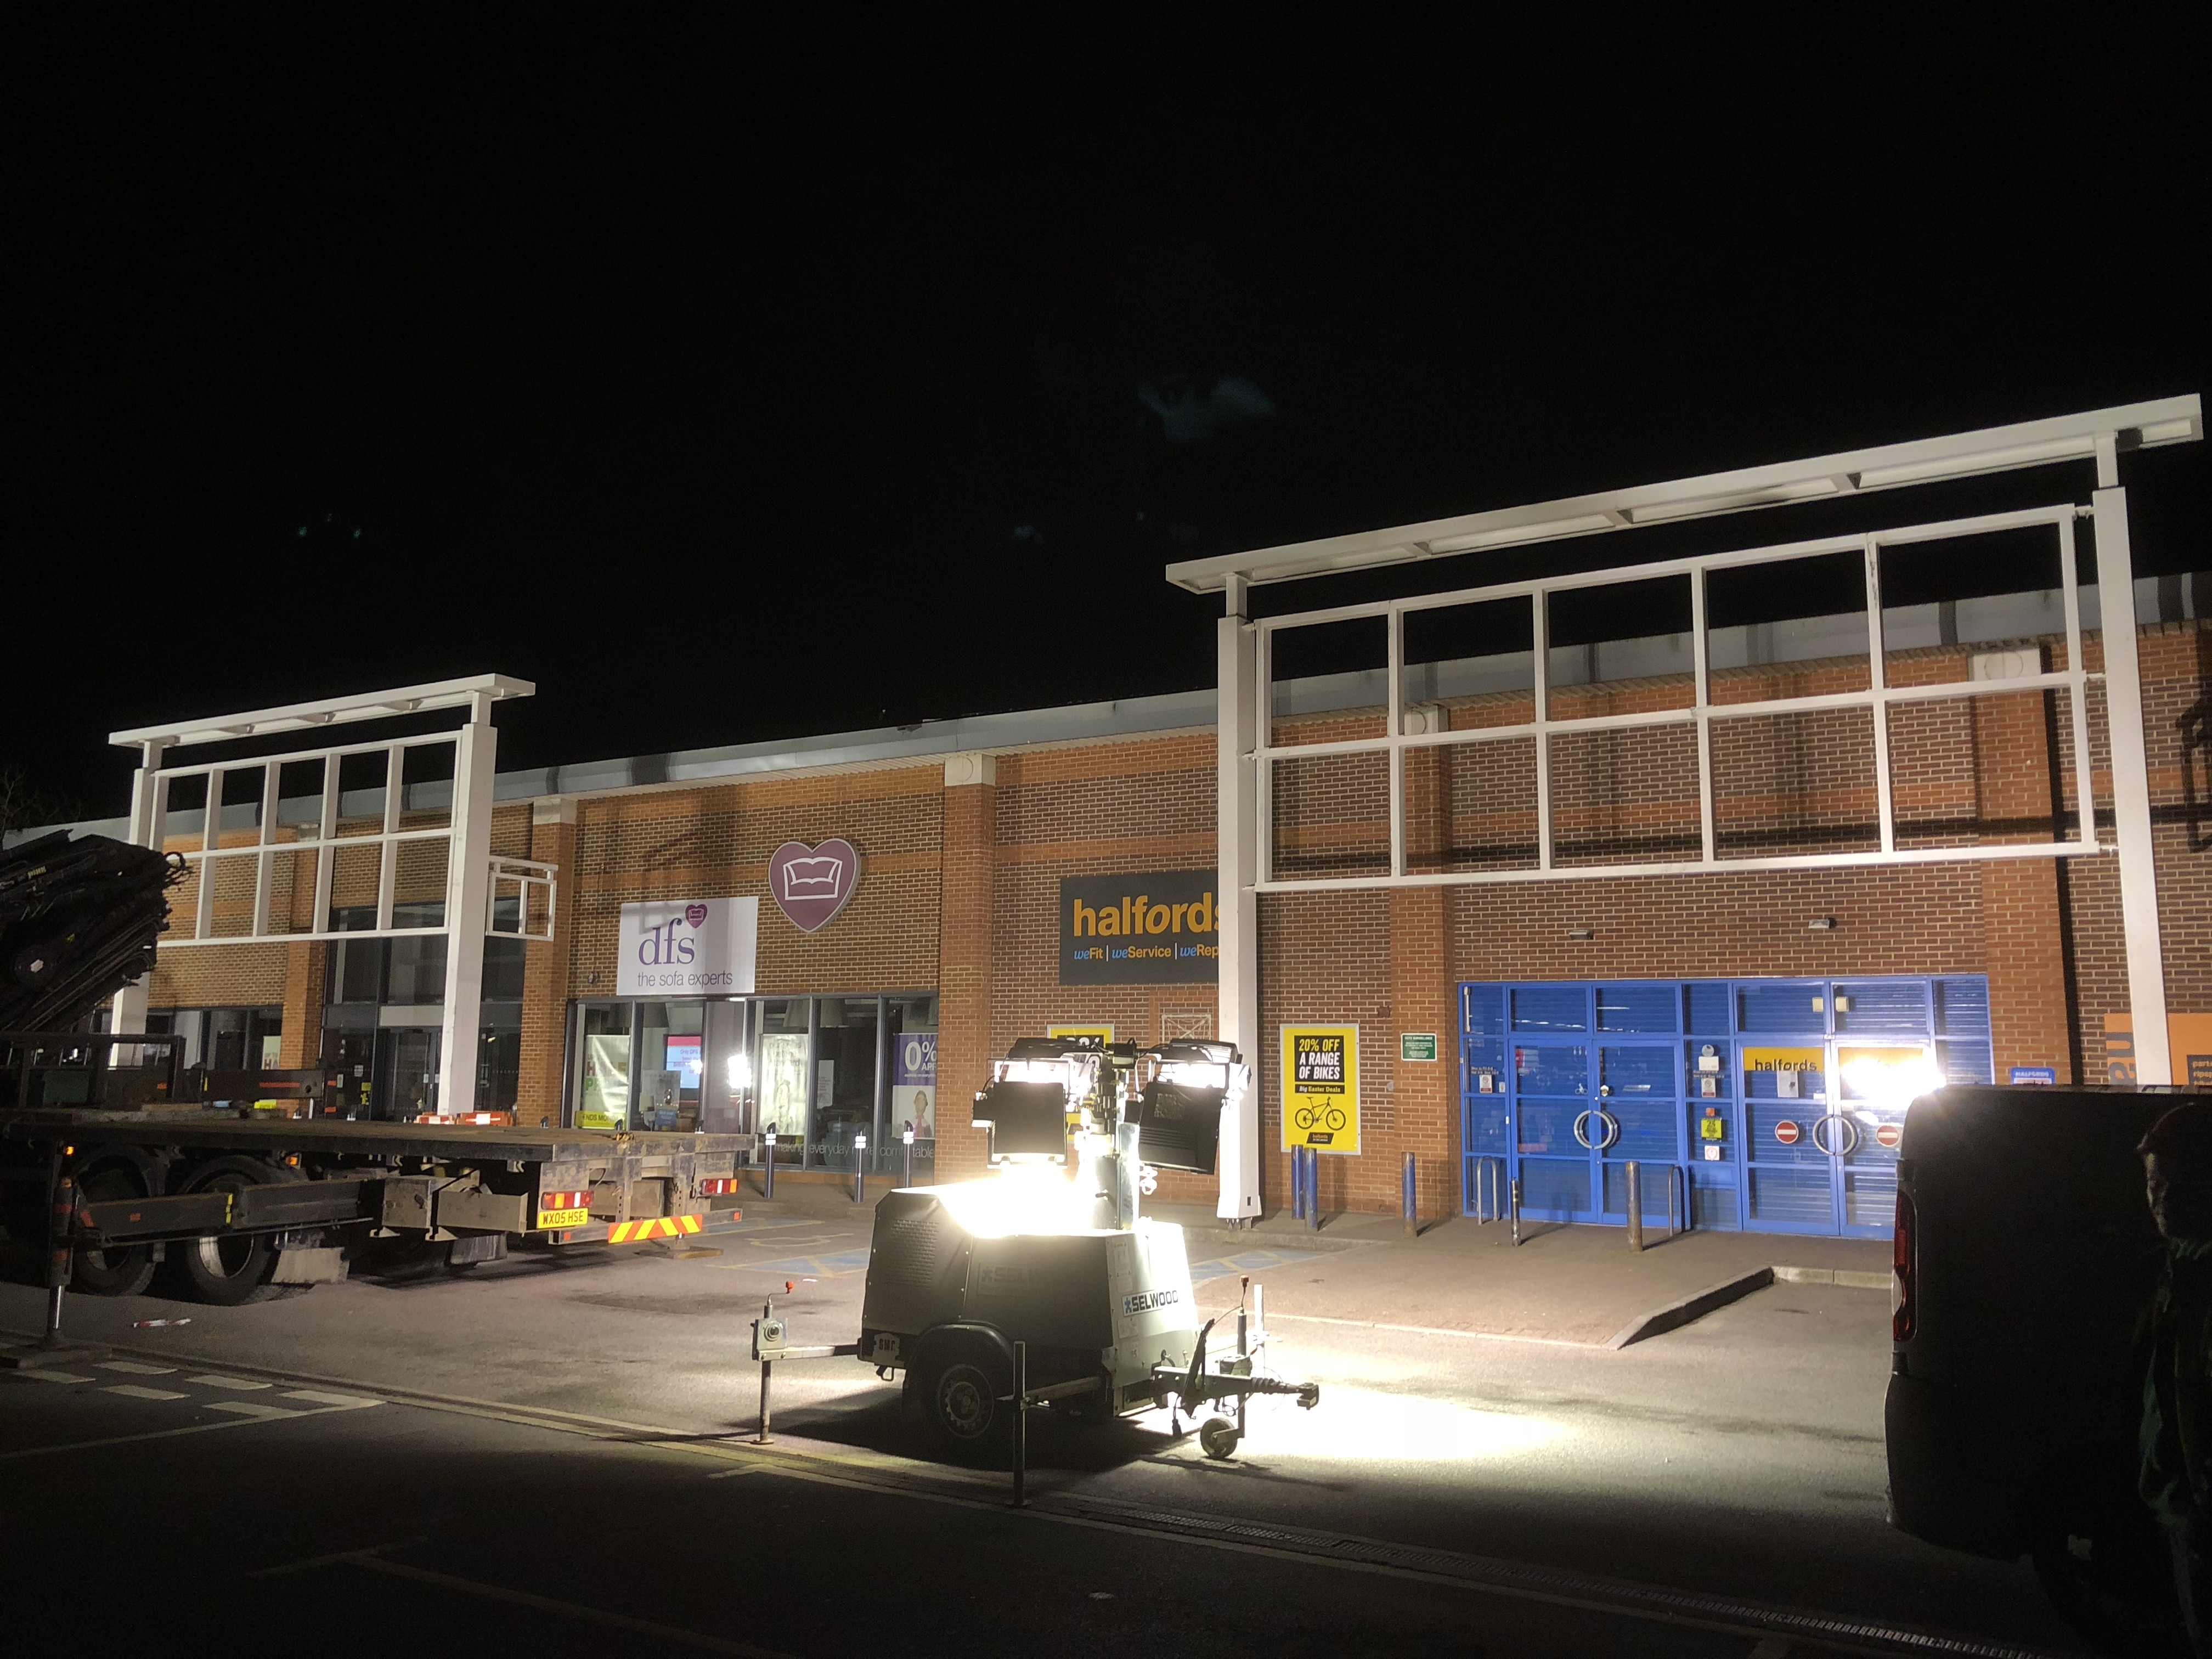 Halfords and Carpet Right Shop Signs